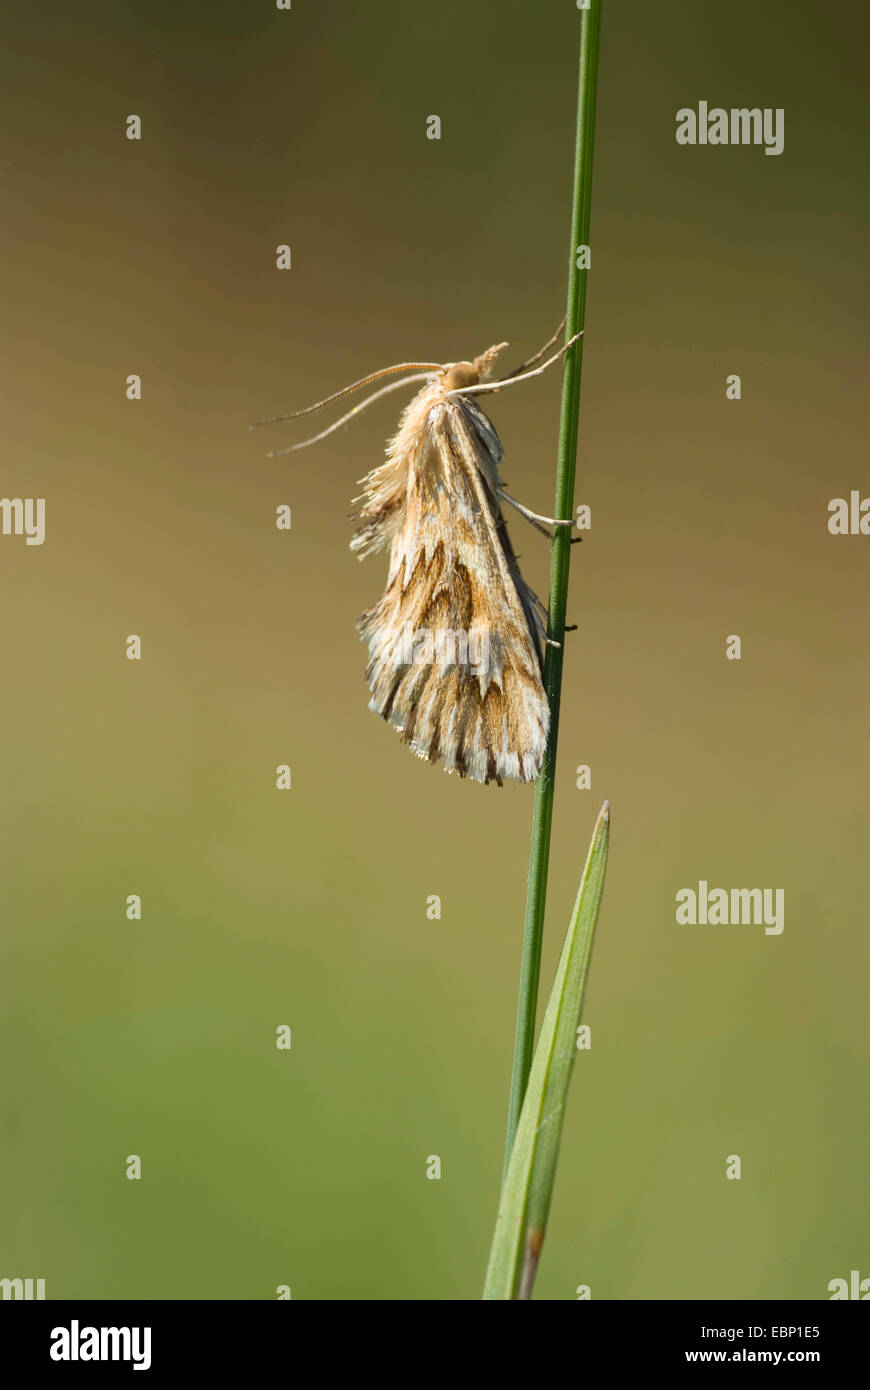 Cynaeda dentalis (Cynaeda dentalis), at a blade of grass, Germany - Stock Image